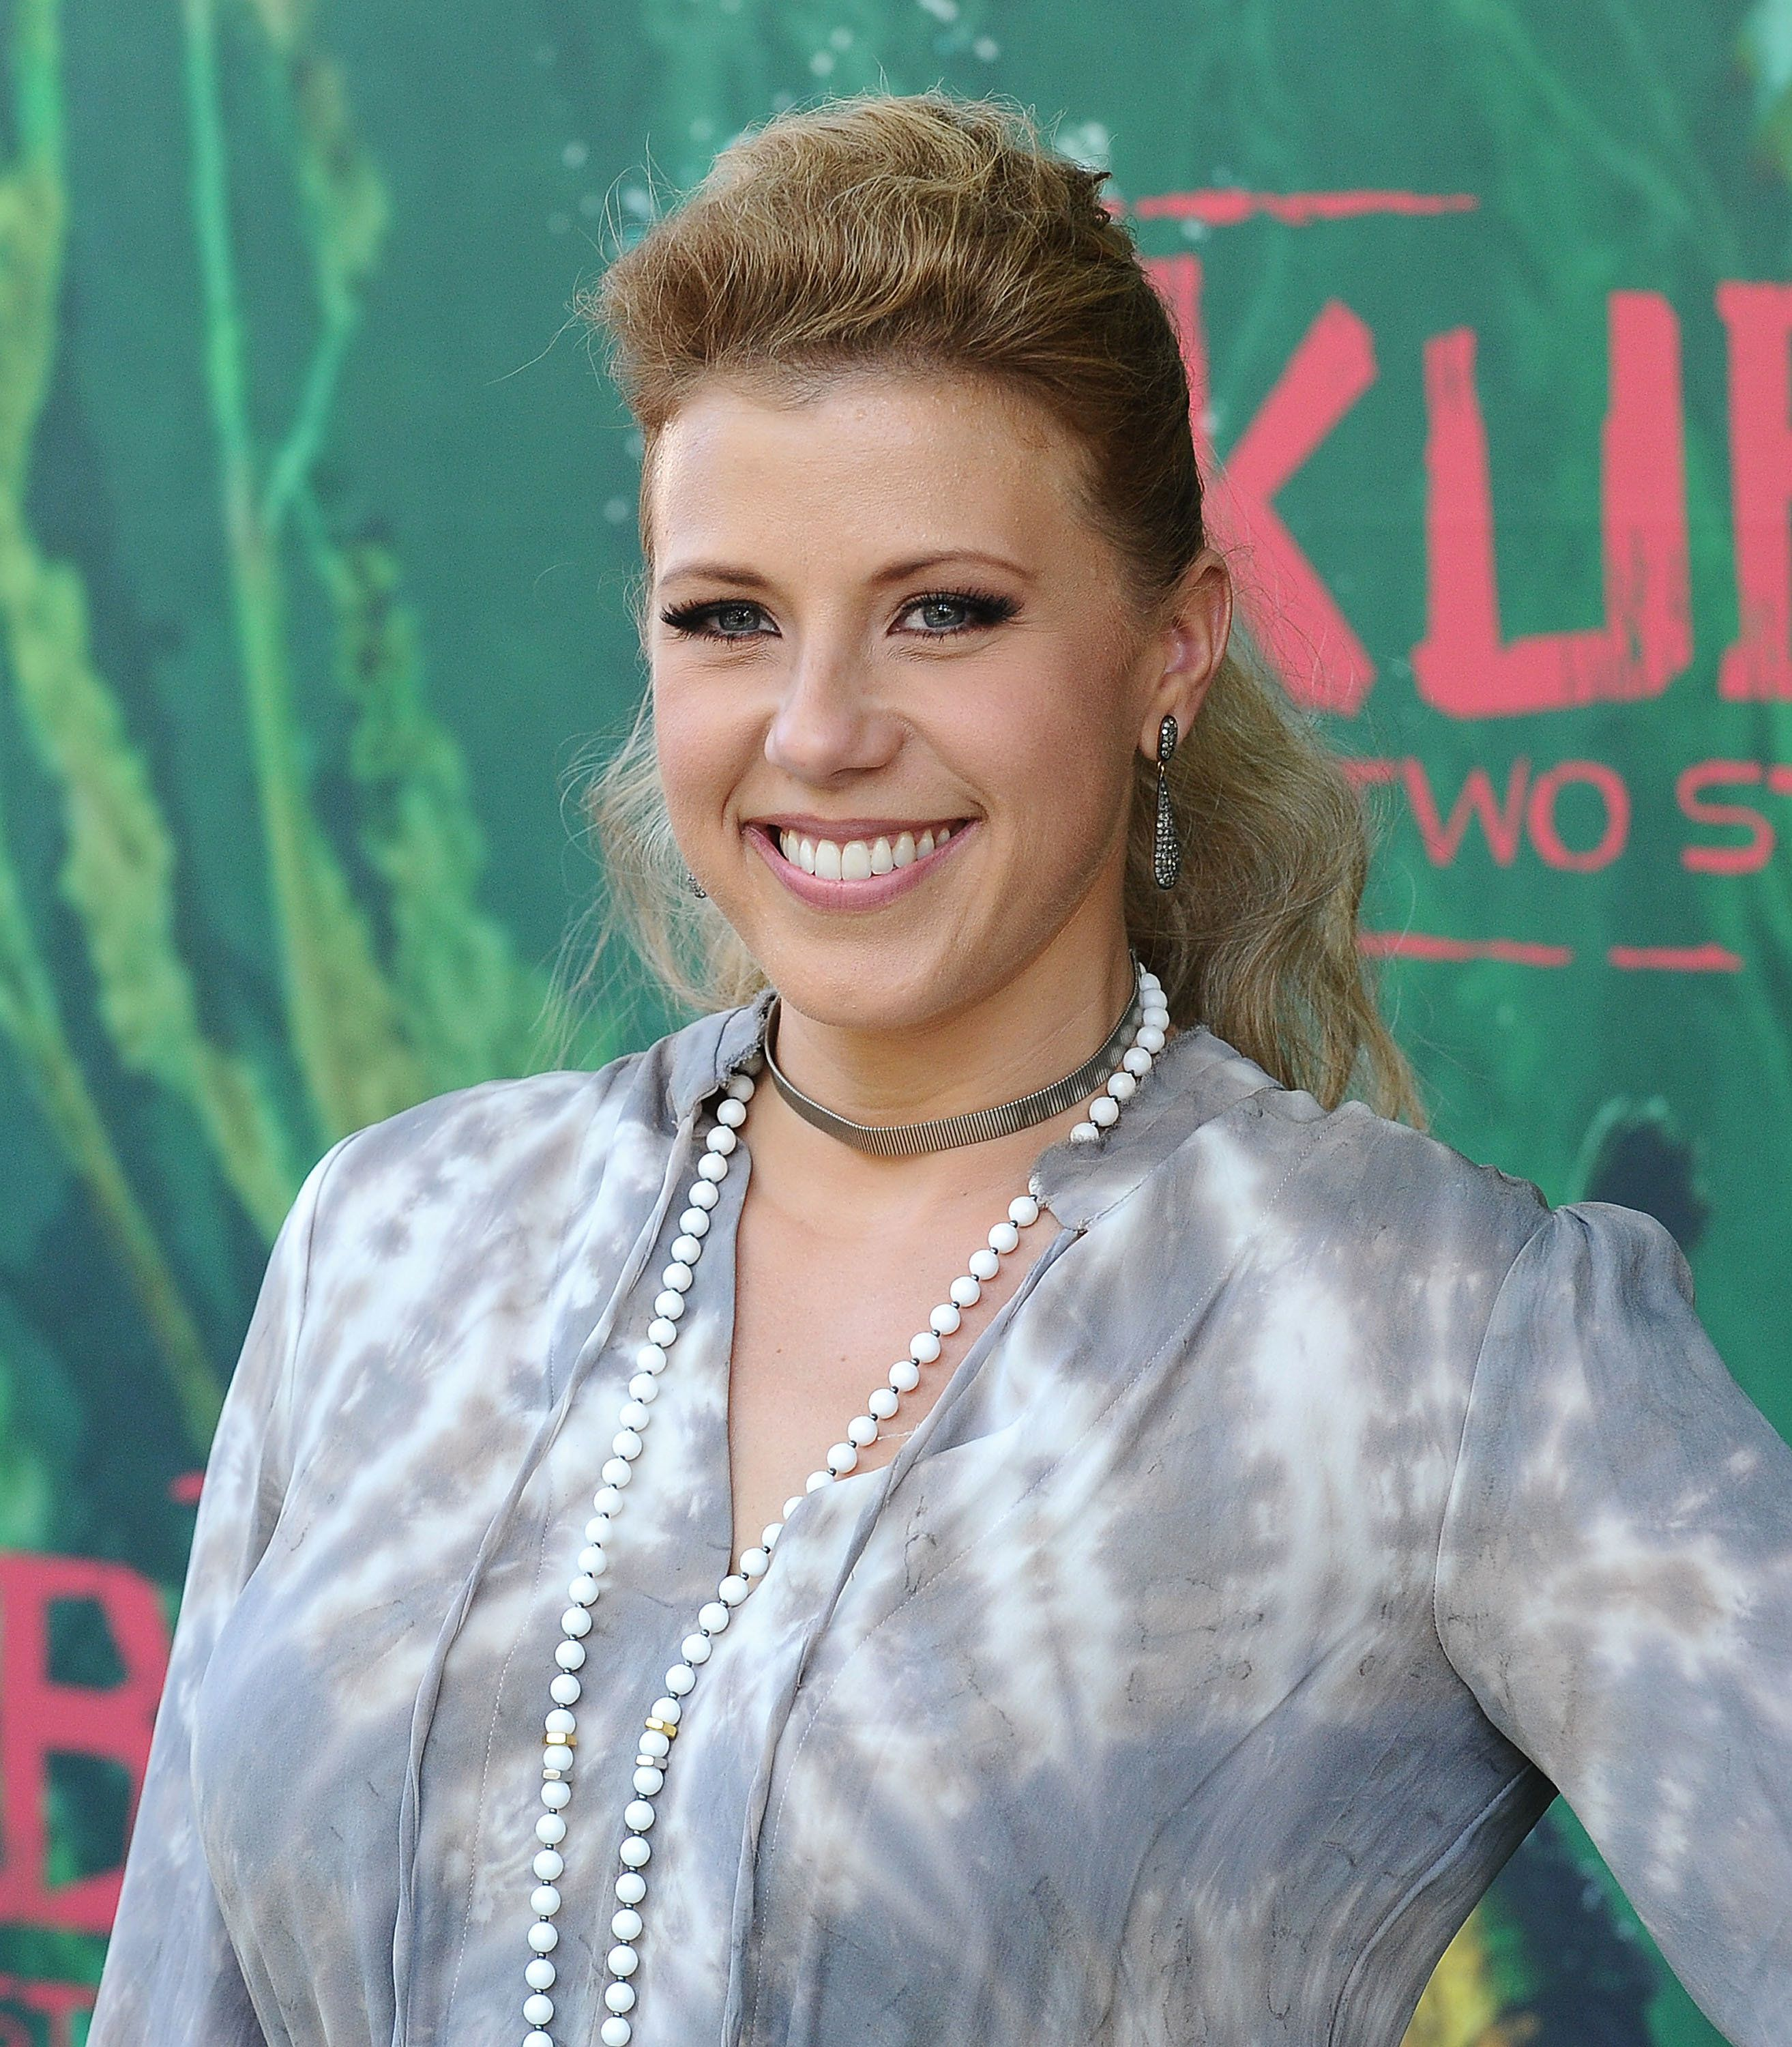 UNIVERSAL CITY, CA - AUGUST 14:  Actress Jodie Sweetin attends the premiere of 'Kubo and the Two Strings' at AMC Universal City Walk on August 14, 2016 in Universal City, California.  (Photo by Jason LaVeris/FilmMagic)